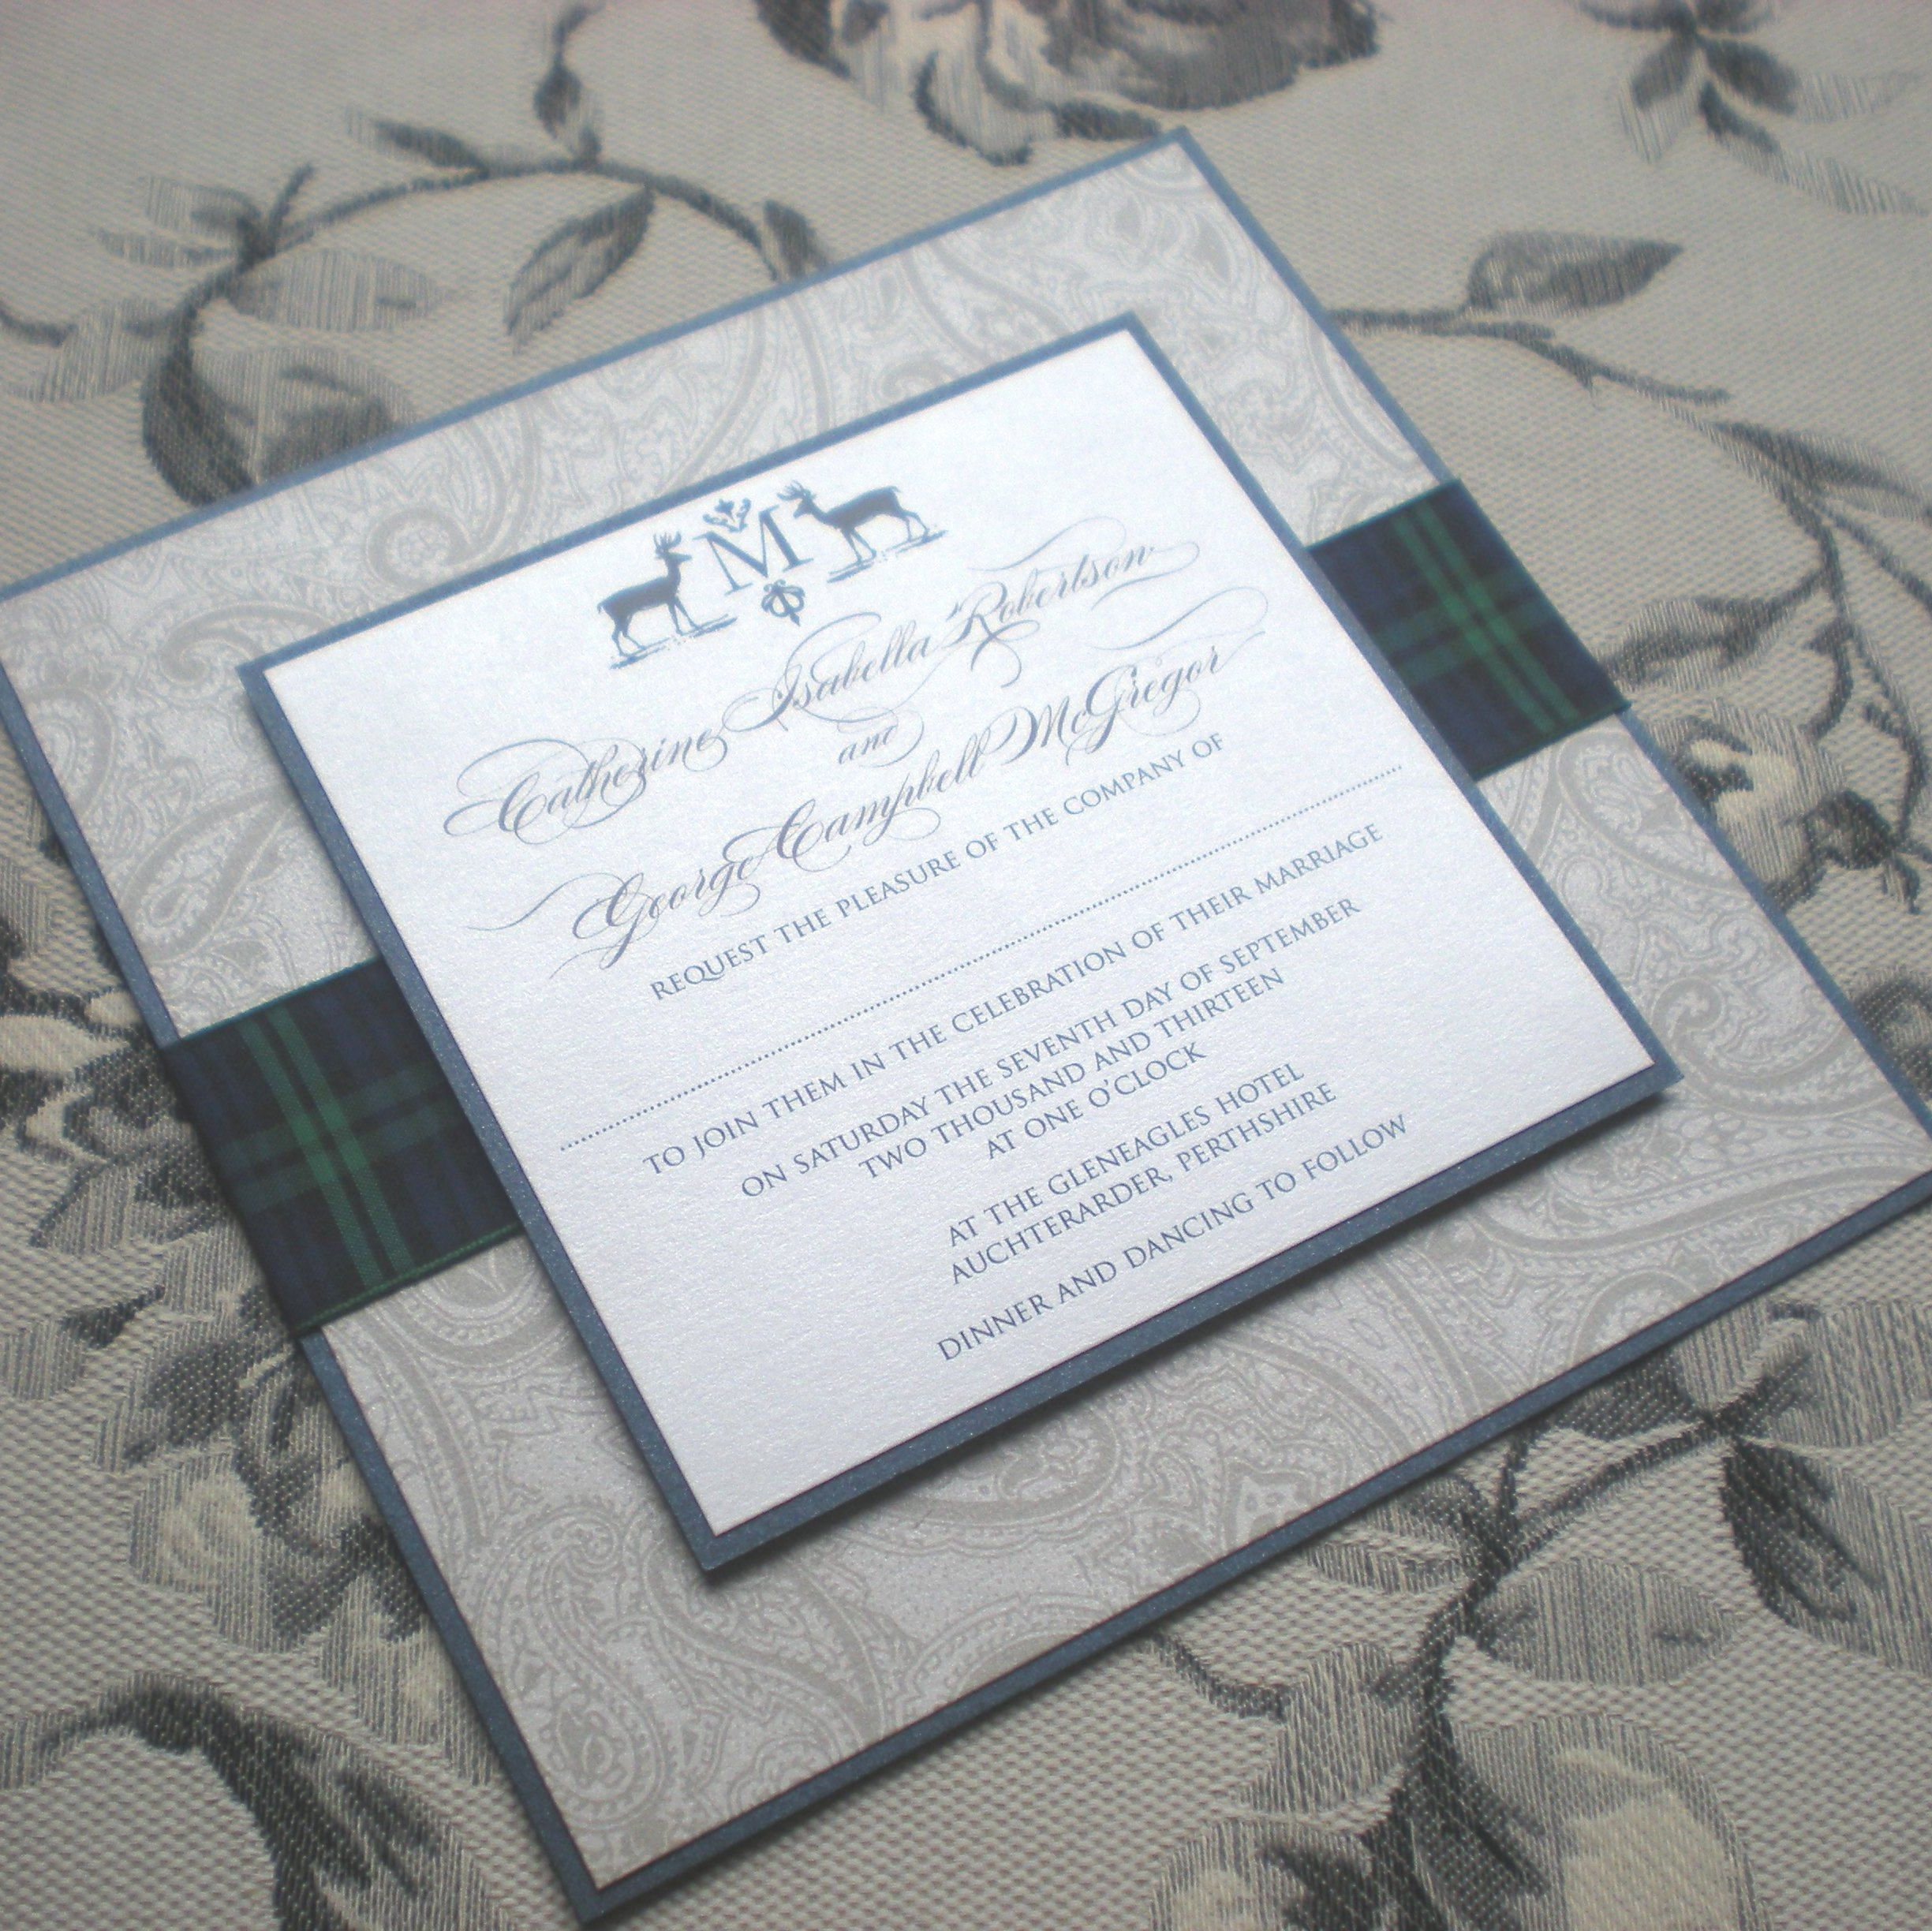 I like this idea to tie in Tartan. The \